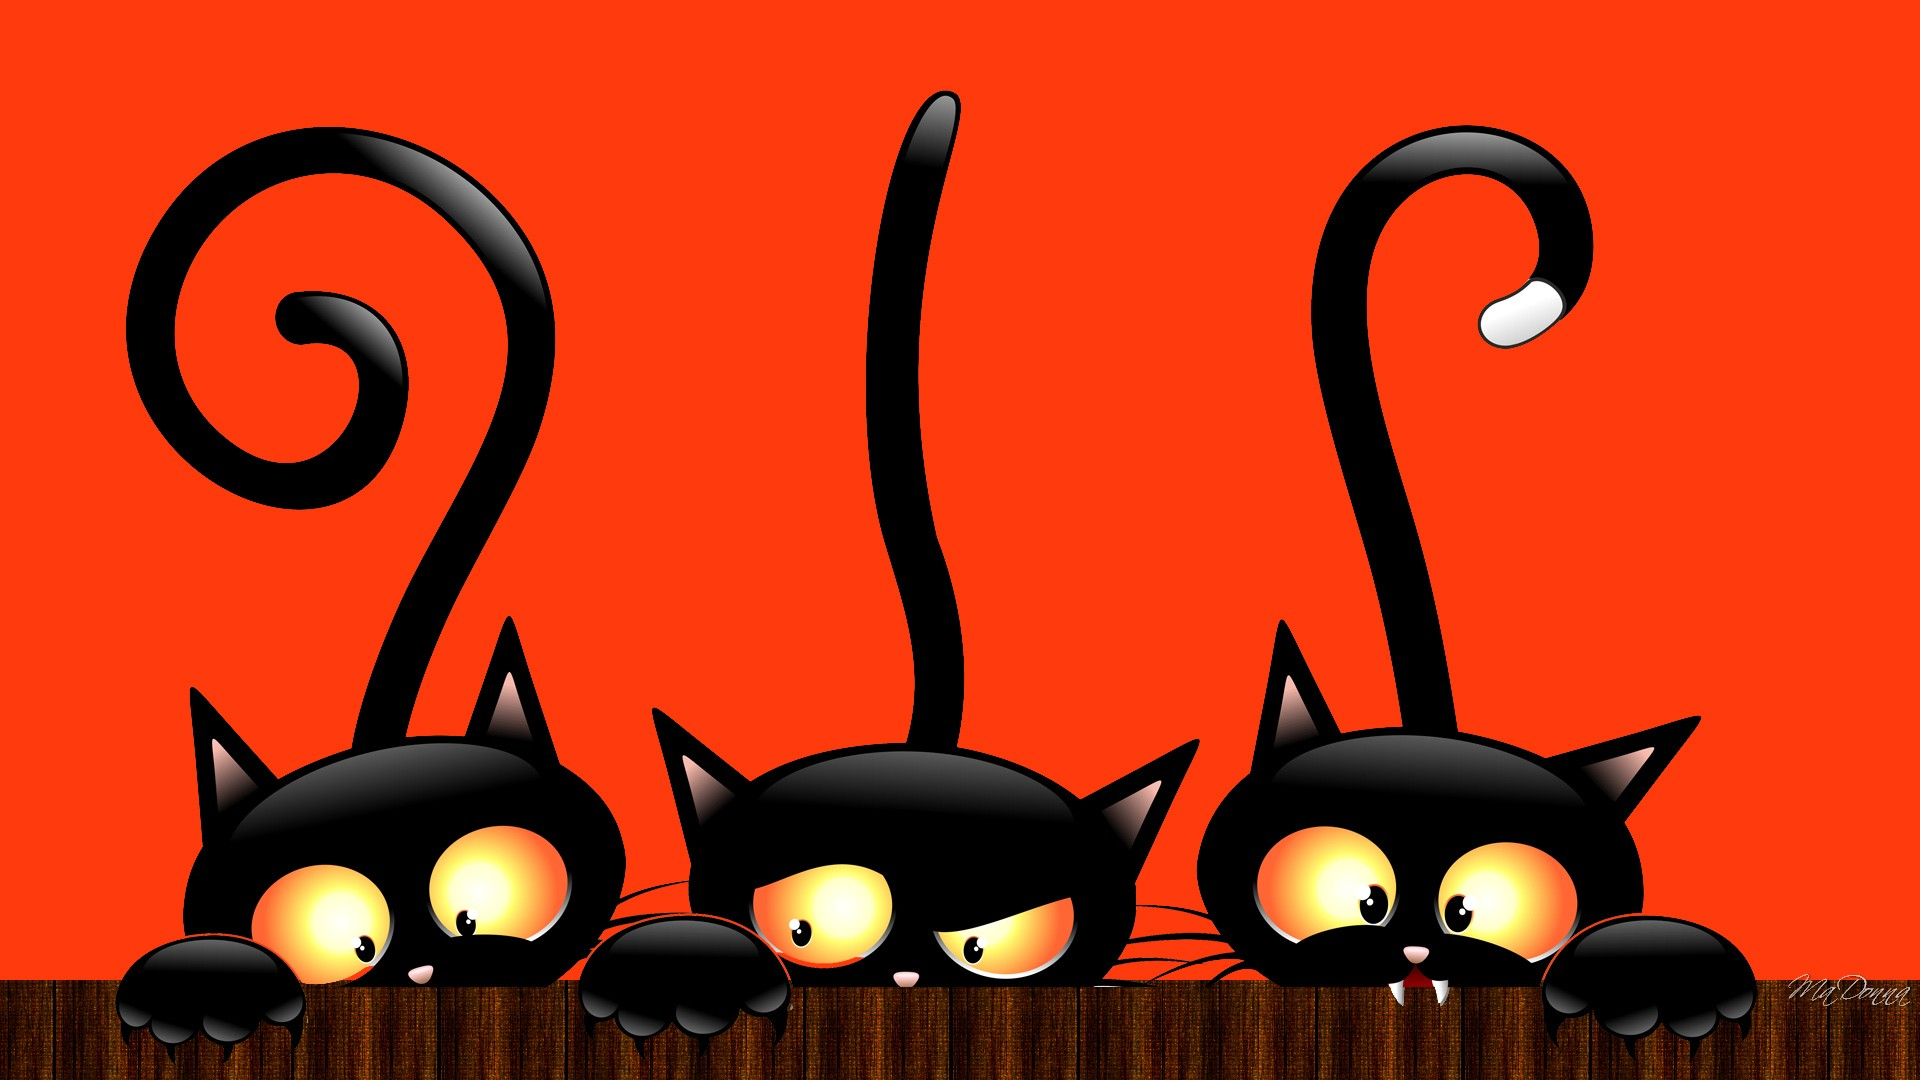 Full HD Hello Kitty Halloween Wallpaper.